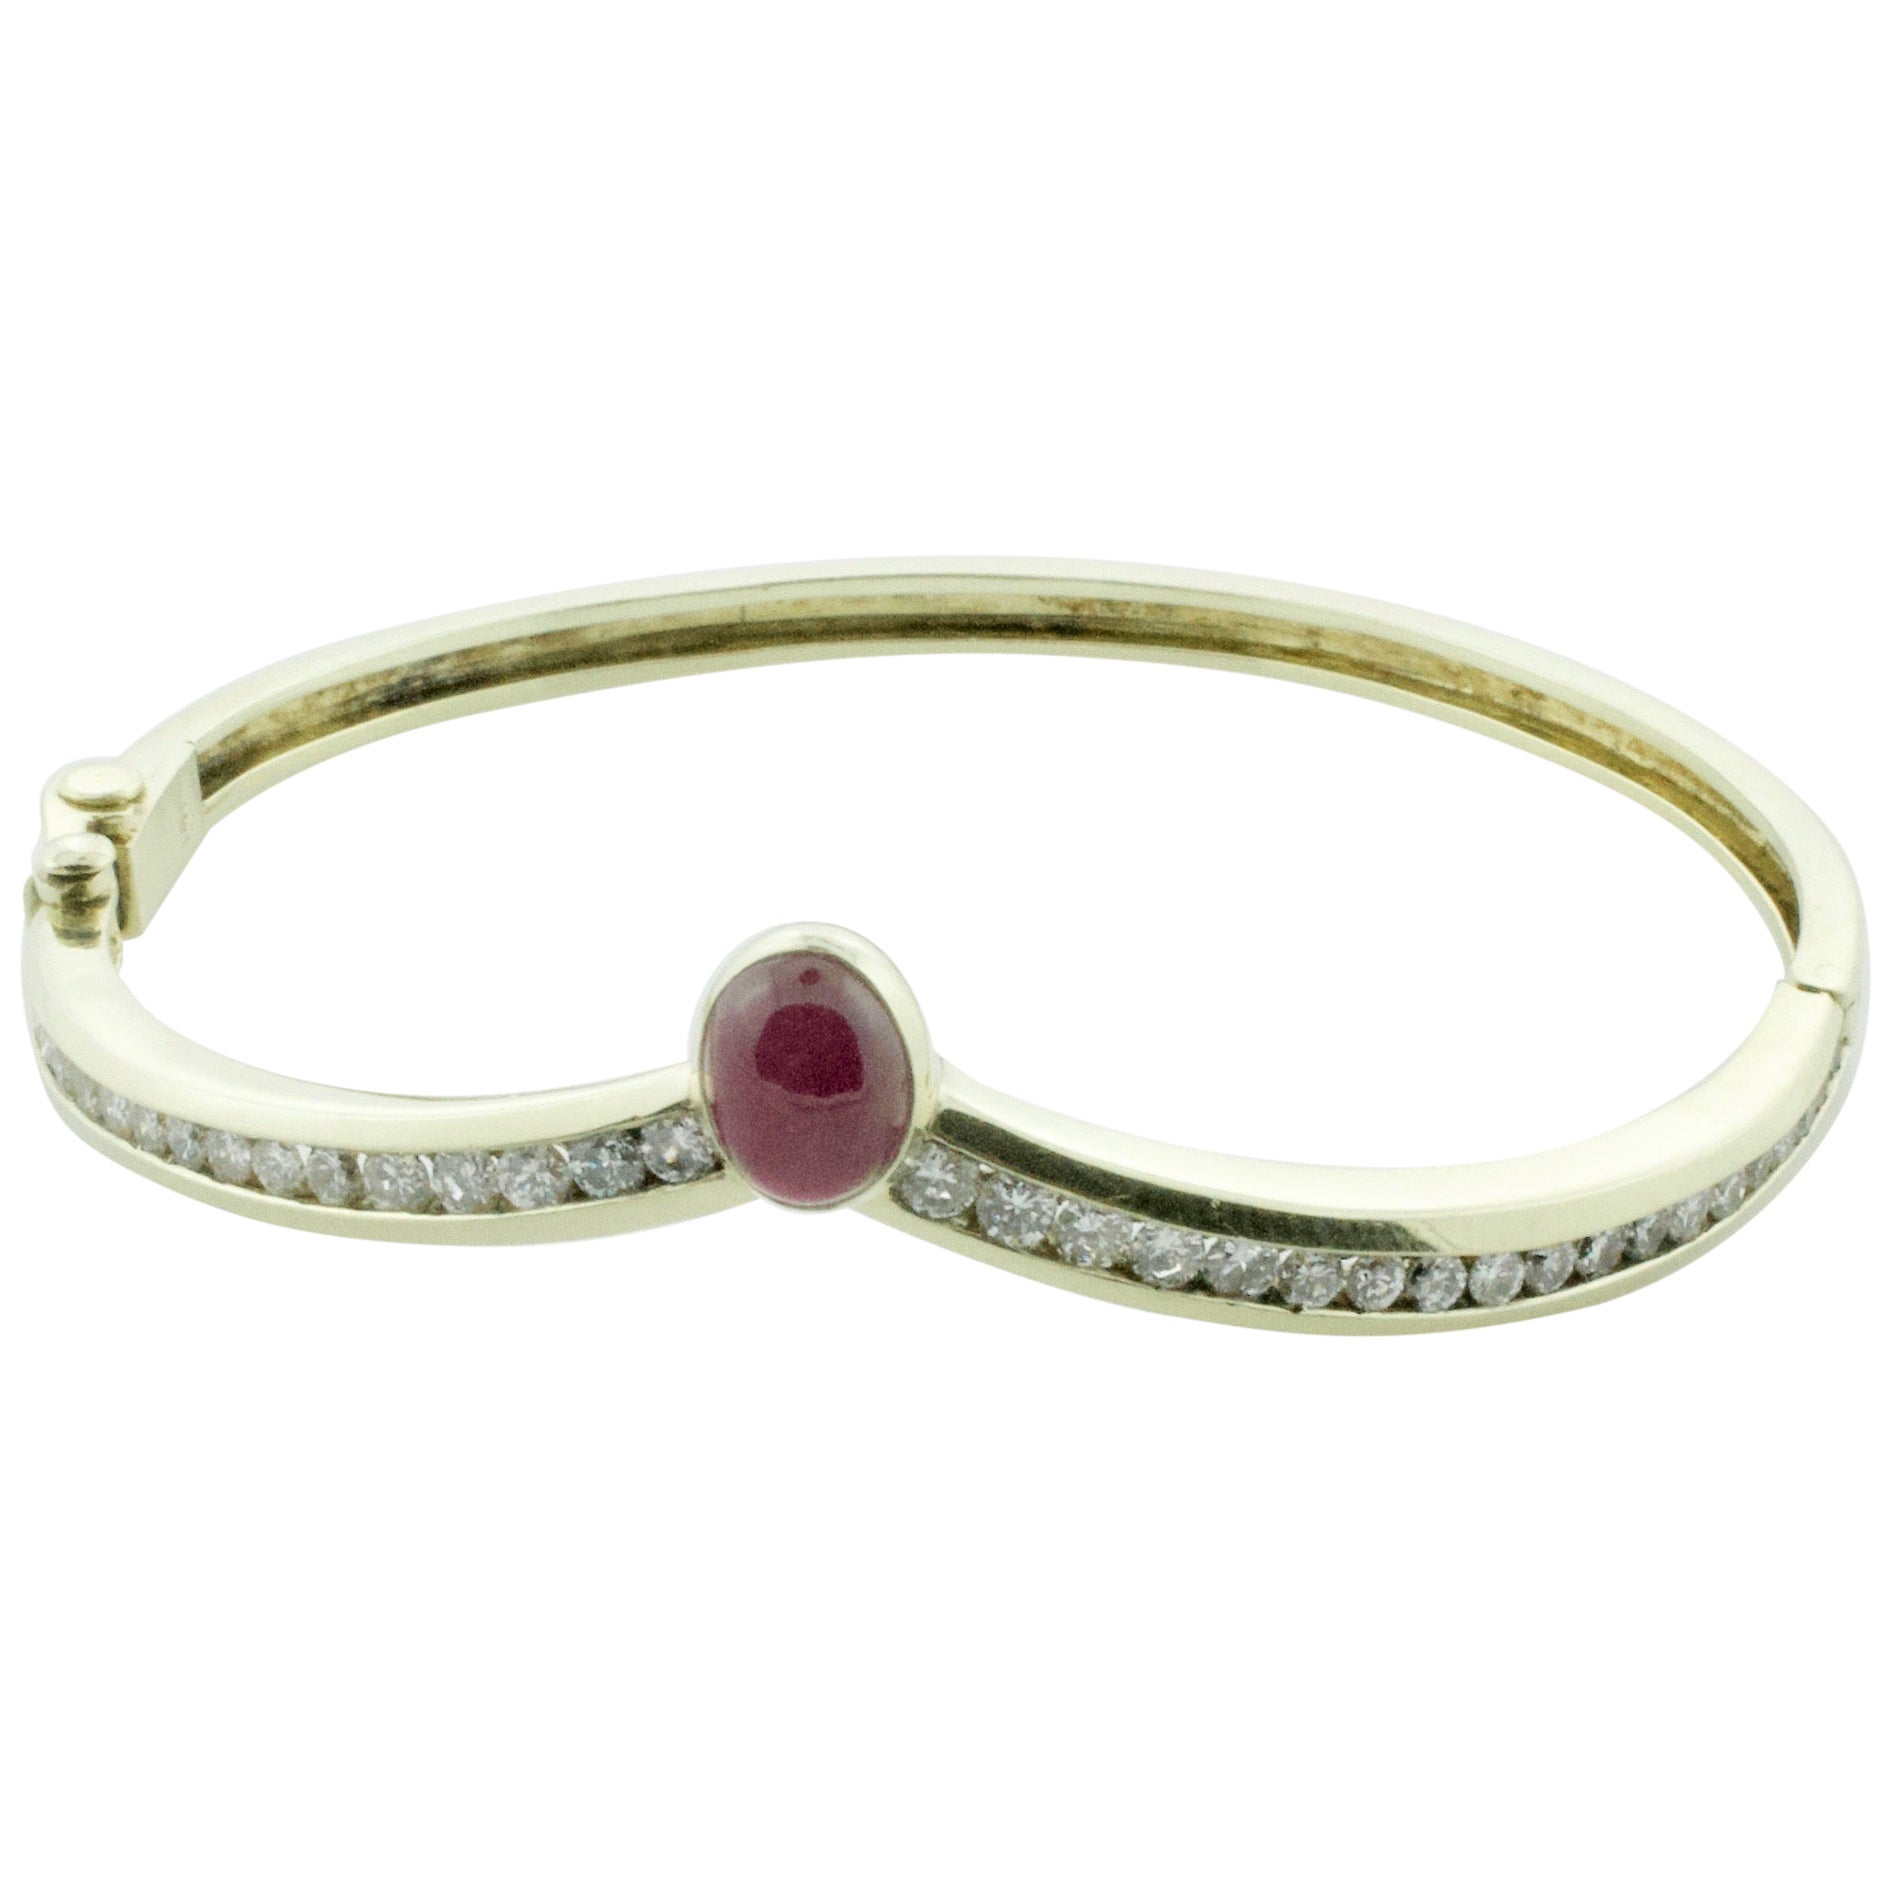 Cabochon Ruby and Diamond Bangle Bracelet Large Size Ruby 2.50 Carat